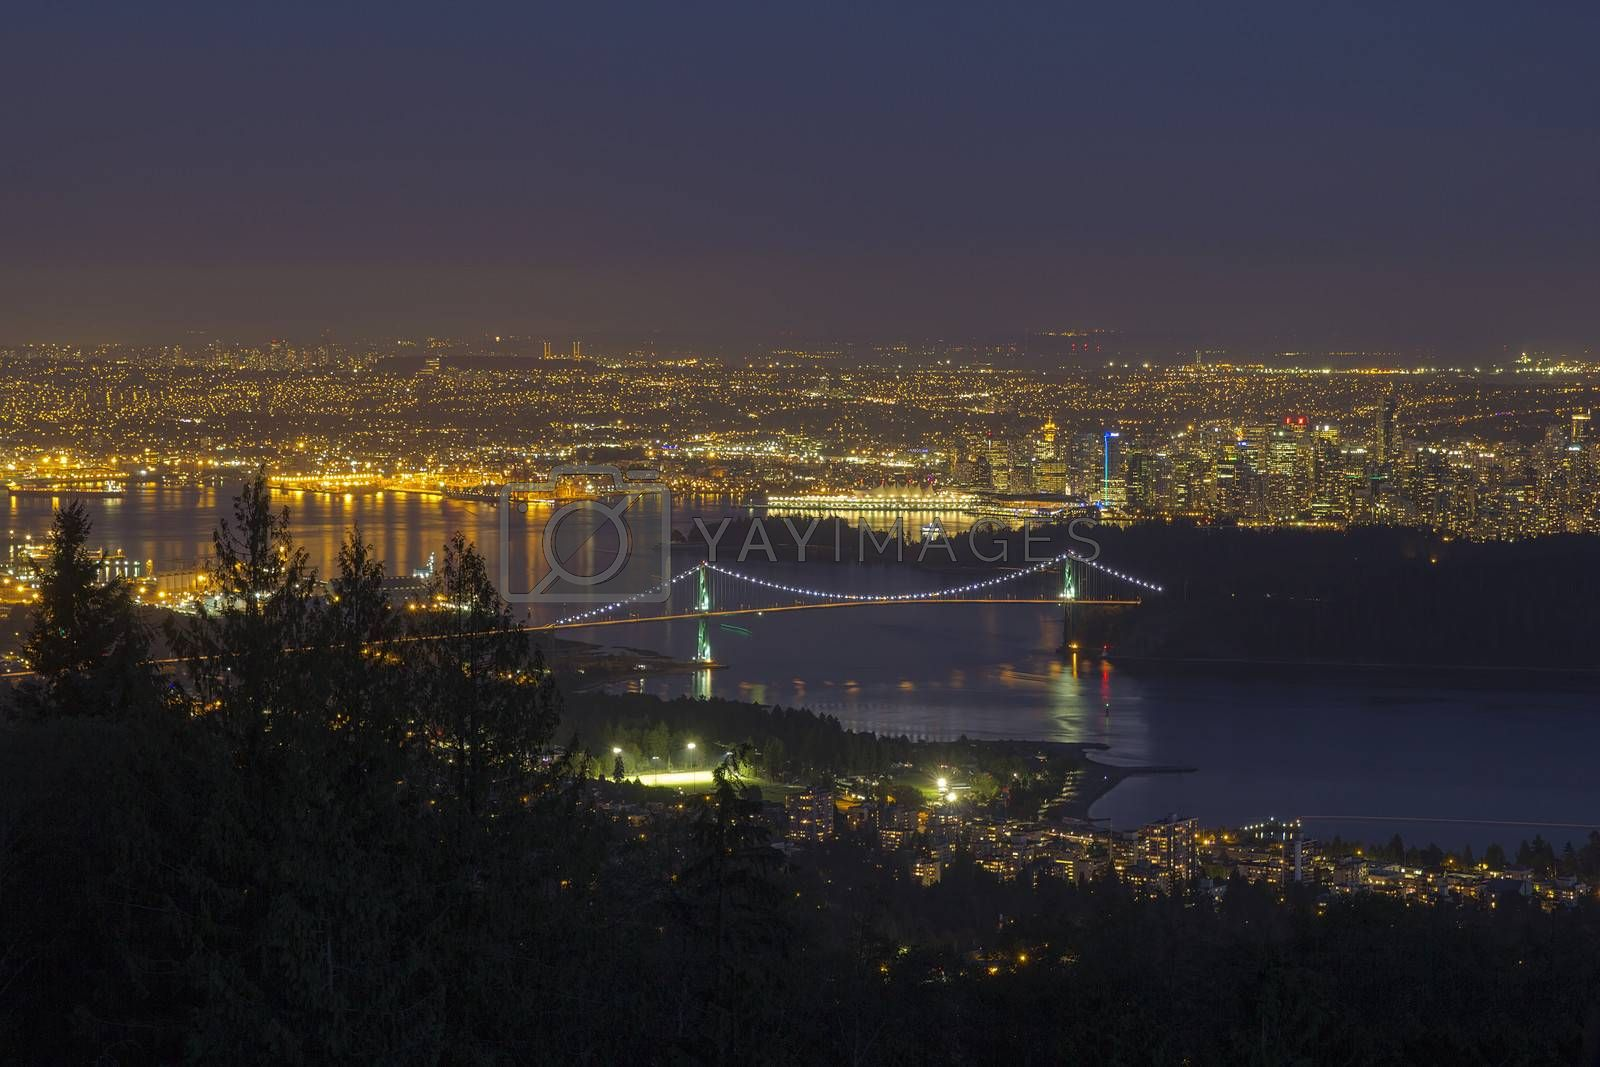 Vancouver BC Canada Cityscape with Stanley Park and Lions Gate Bridge Over Burrard Inlet at Evening Blue Hour